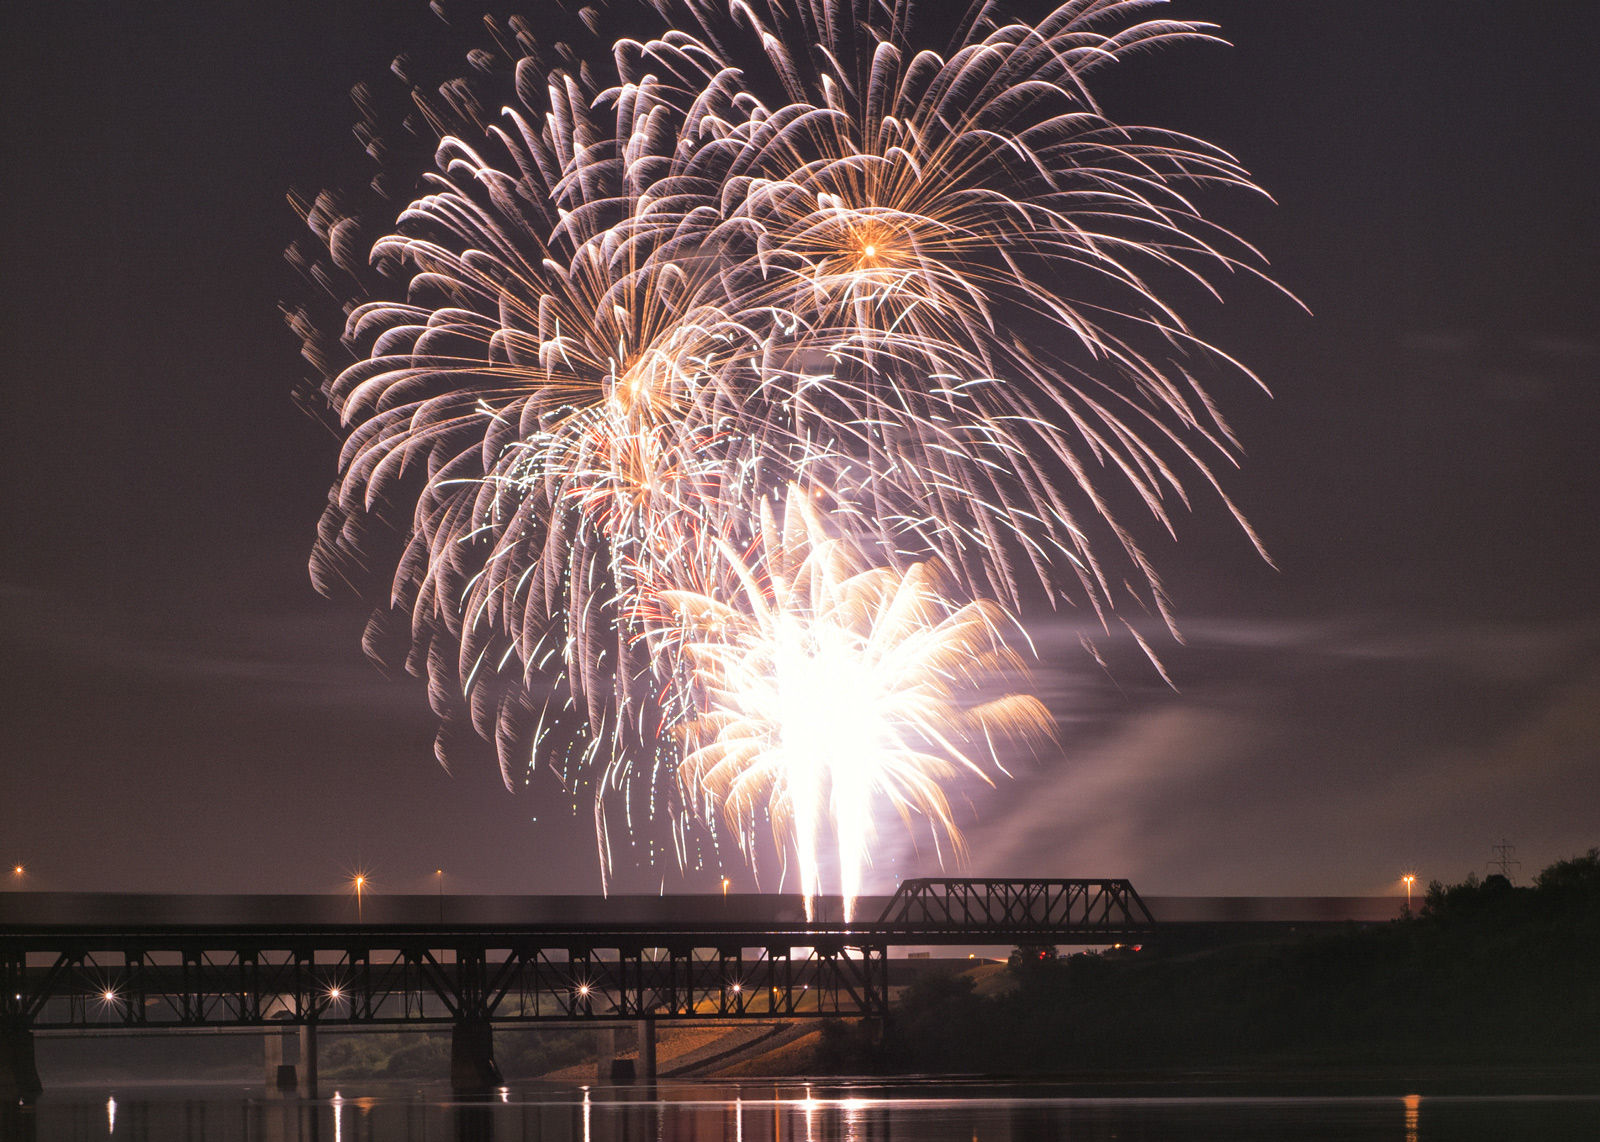 Catch the fireworks over the South Saskatchewan River on Canada Day, one of the most popular tourism Saskatoon events.